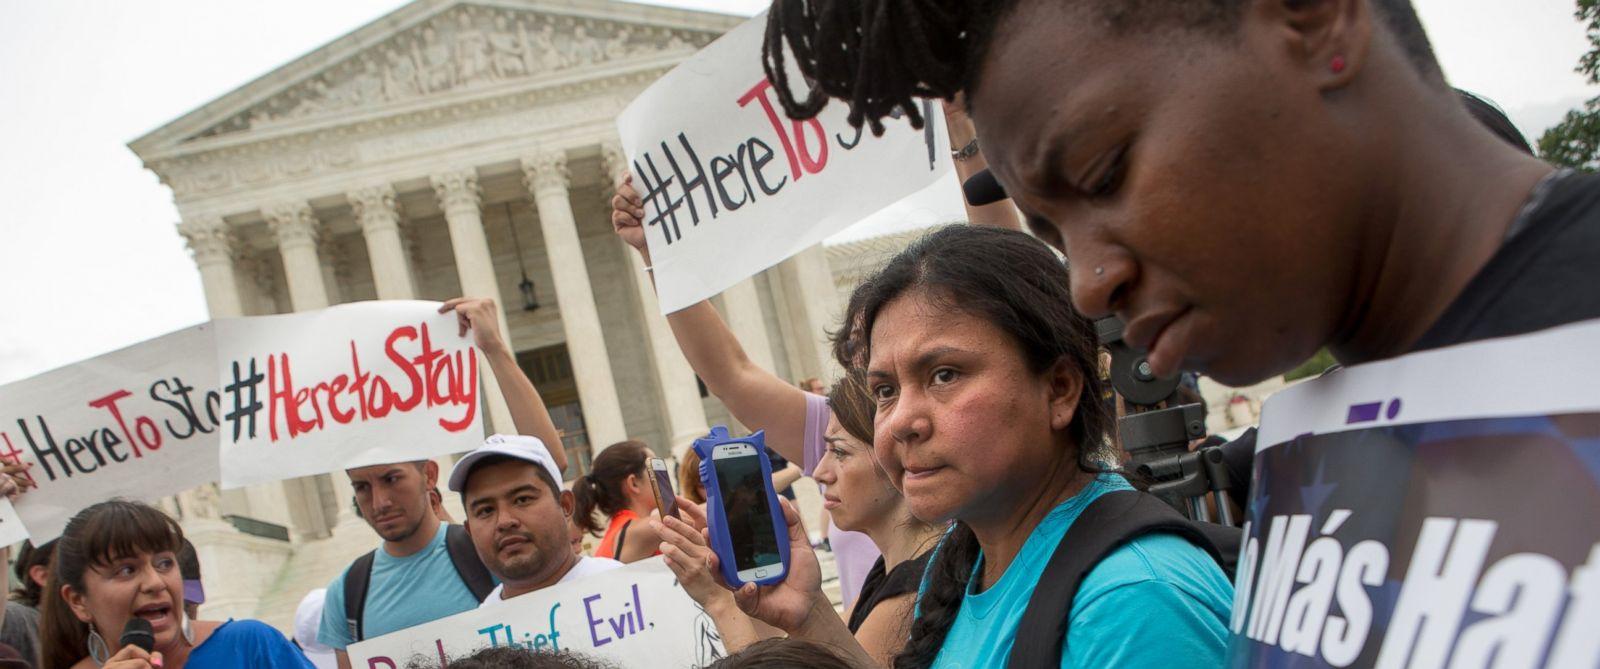 What are the new US immigration laws? And their defintion of action?